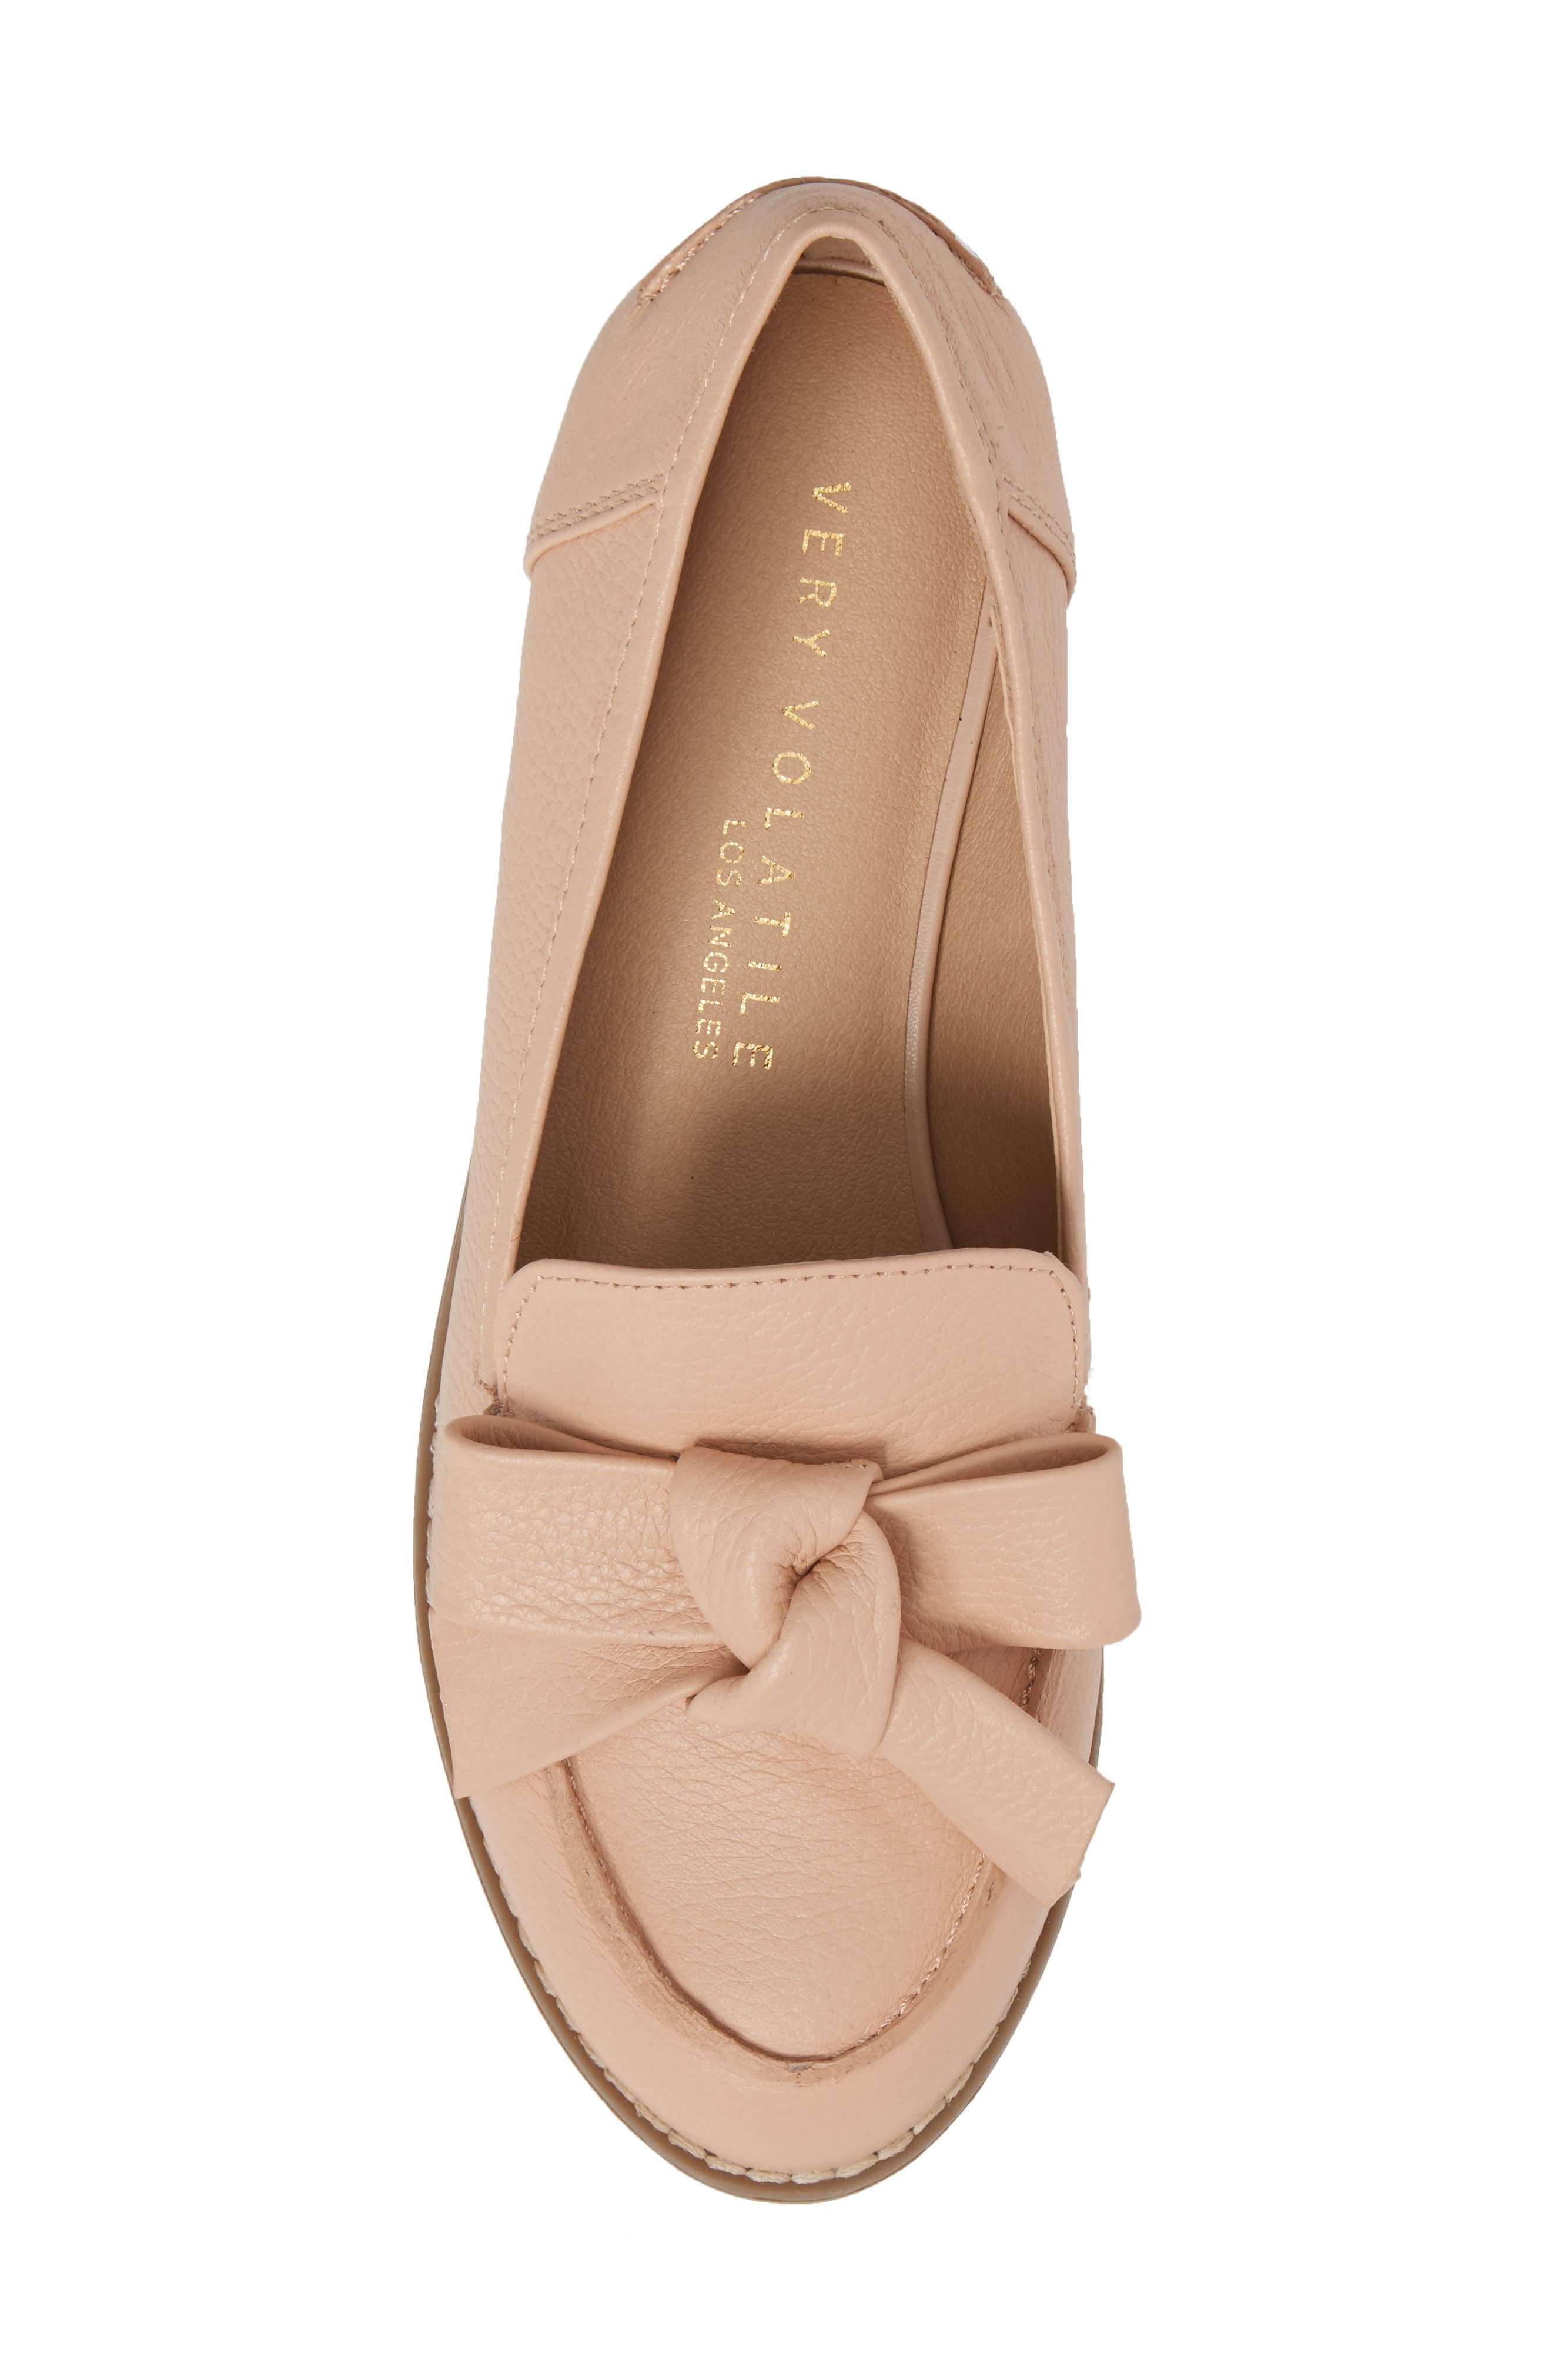 Beaux Loafer,                             Alternate thumbnail 5, color,                             Blush